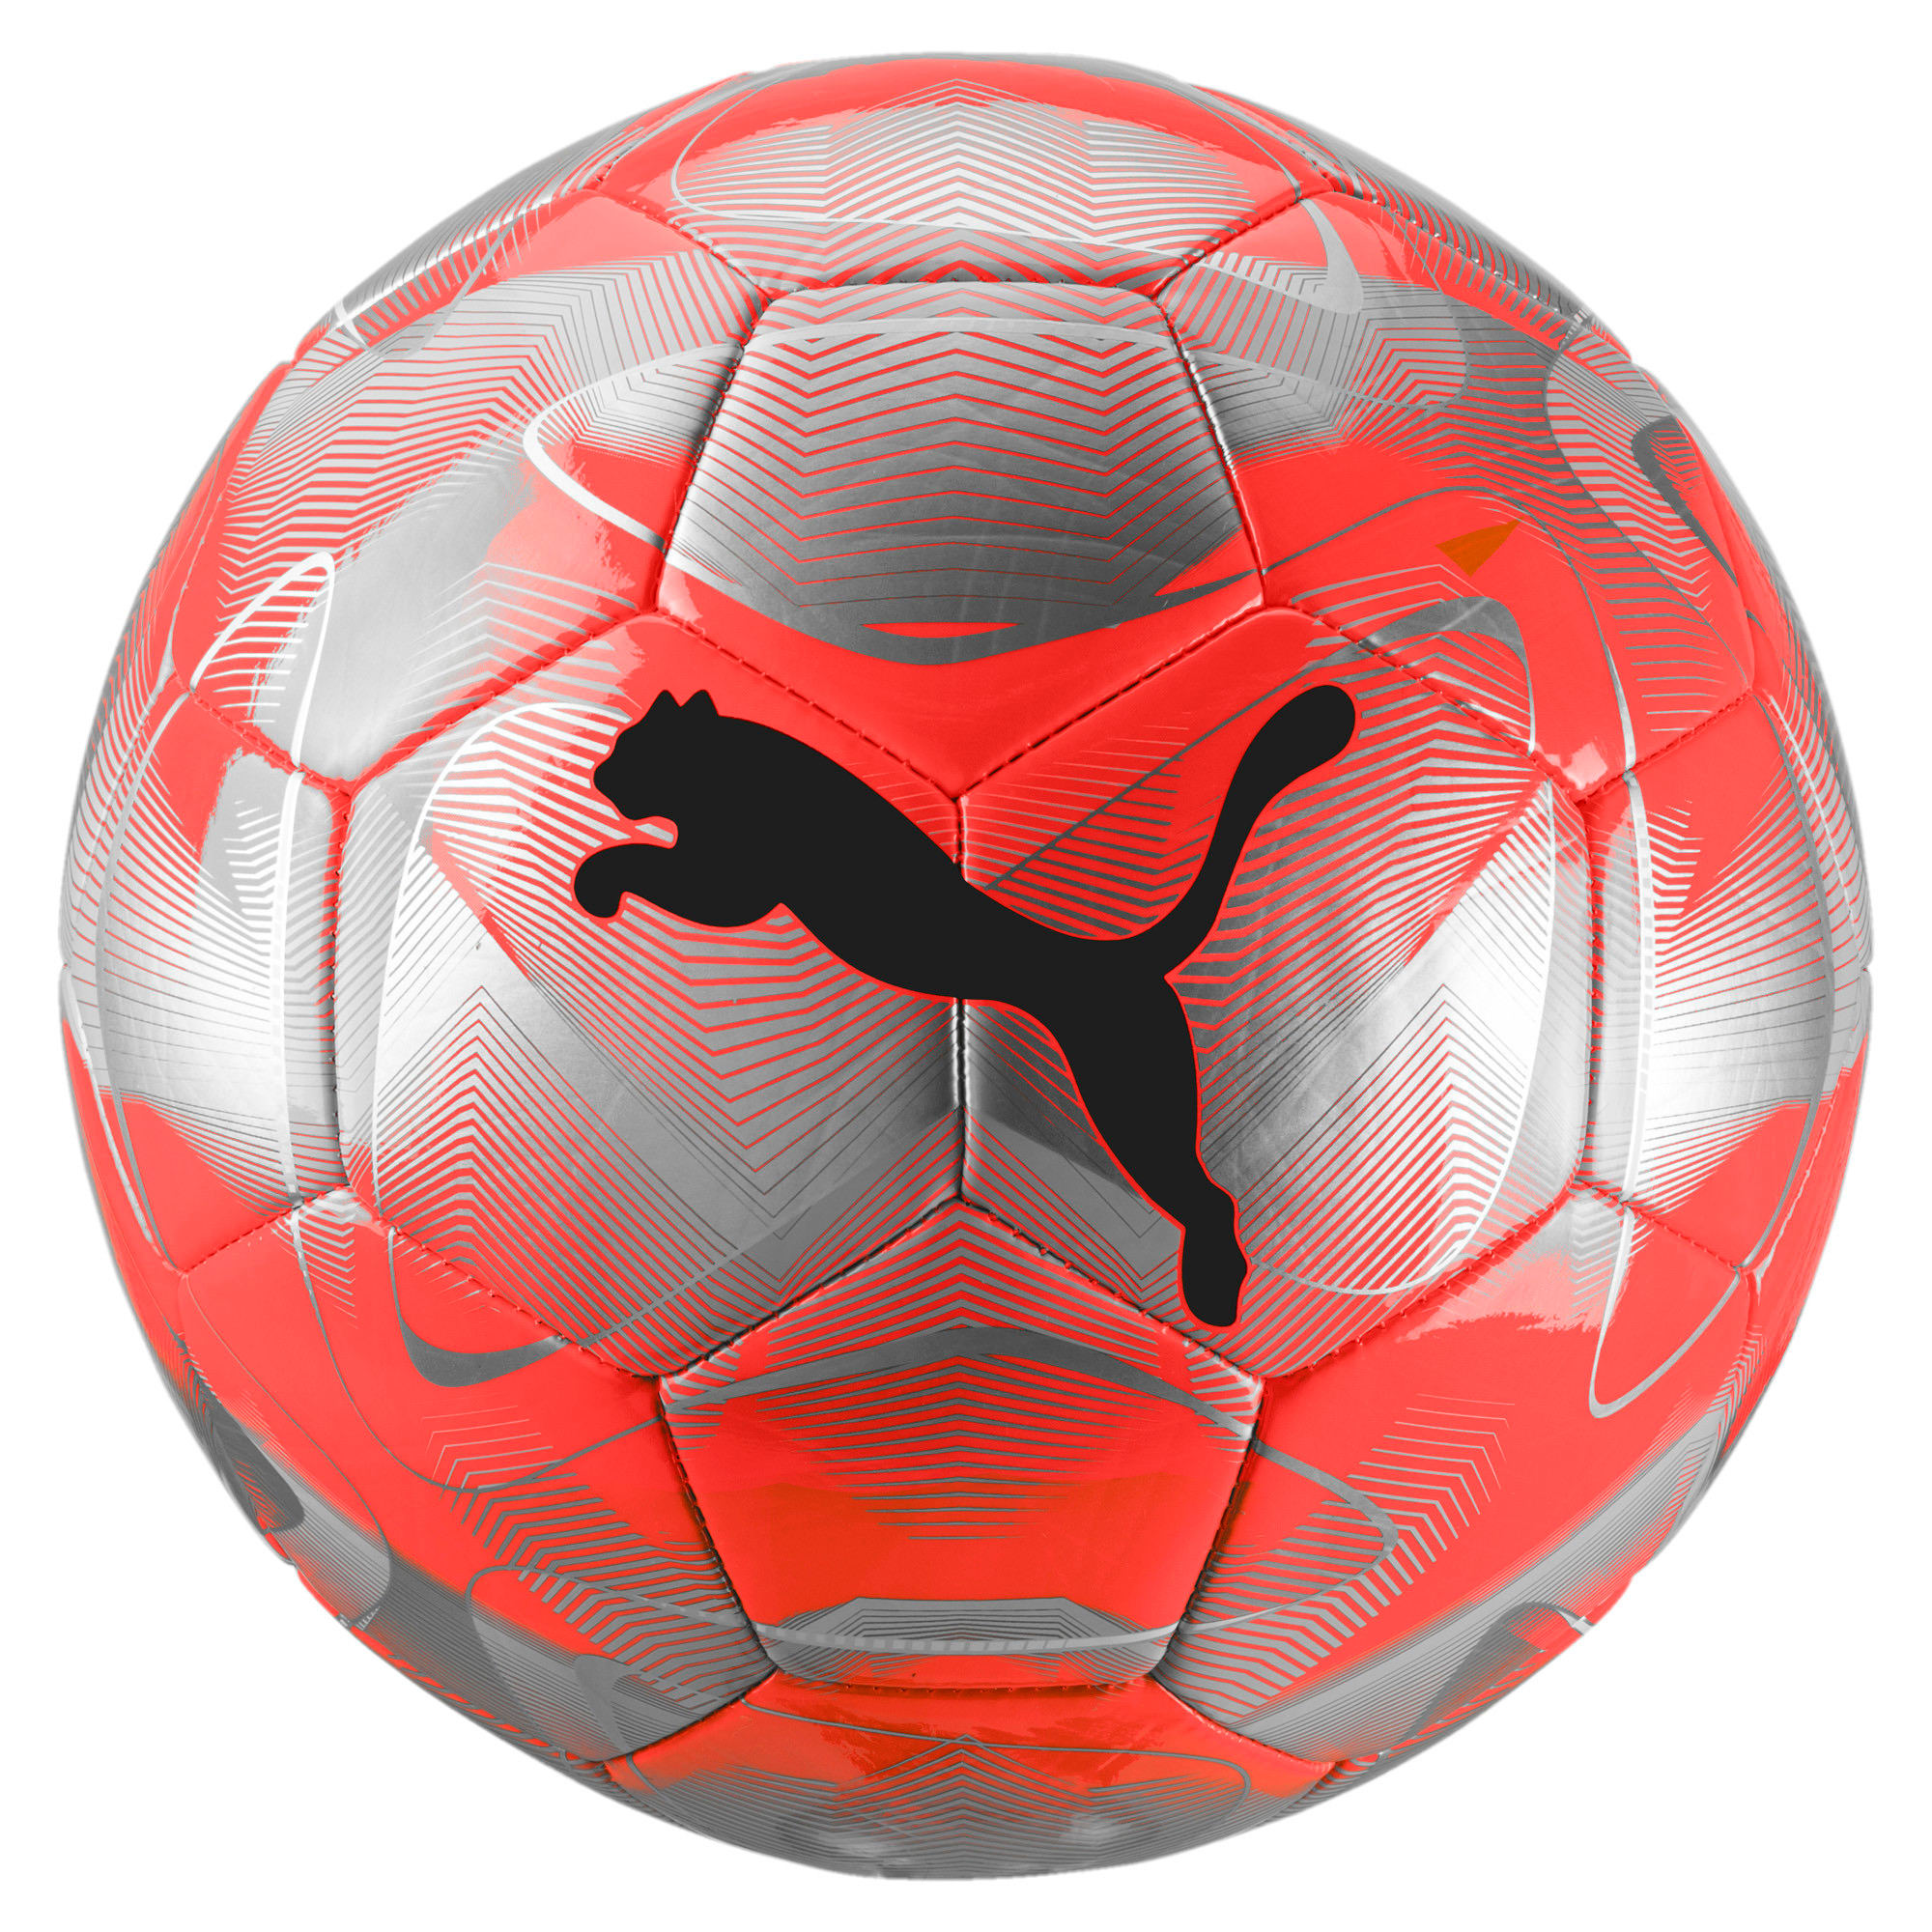 Thumbnail 1 of FUTURE Flash Soccer Ball, Nrgy Red-Silver-Grey-Black, medium